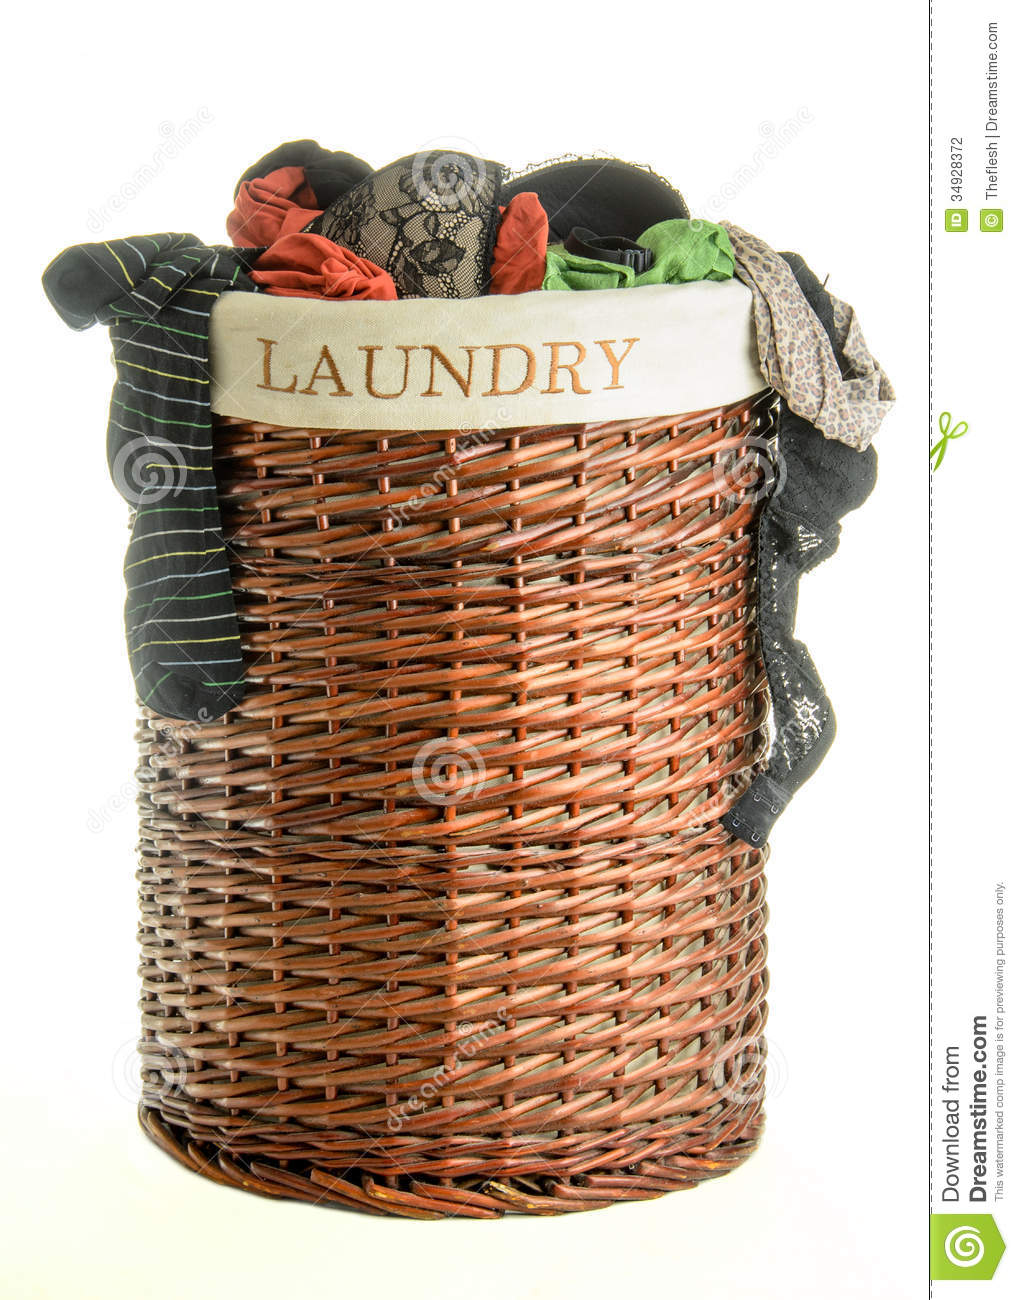 Laundry Hamper Clipart Laundry Basket With Clothes